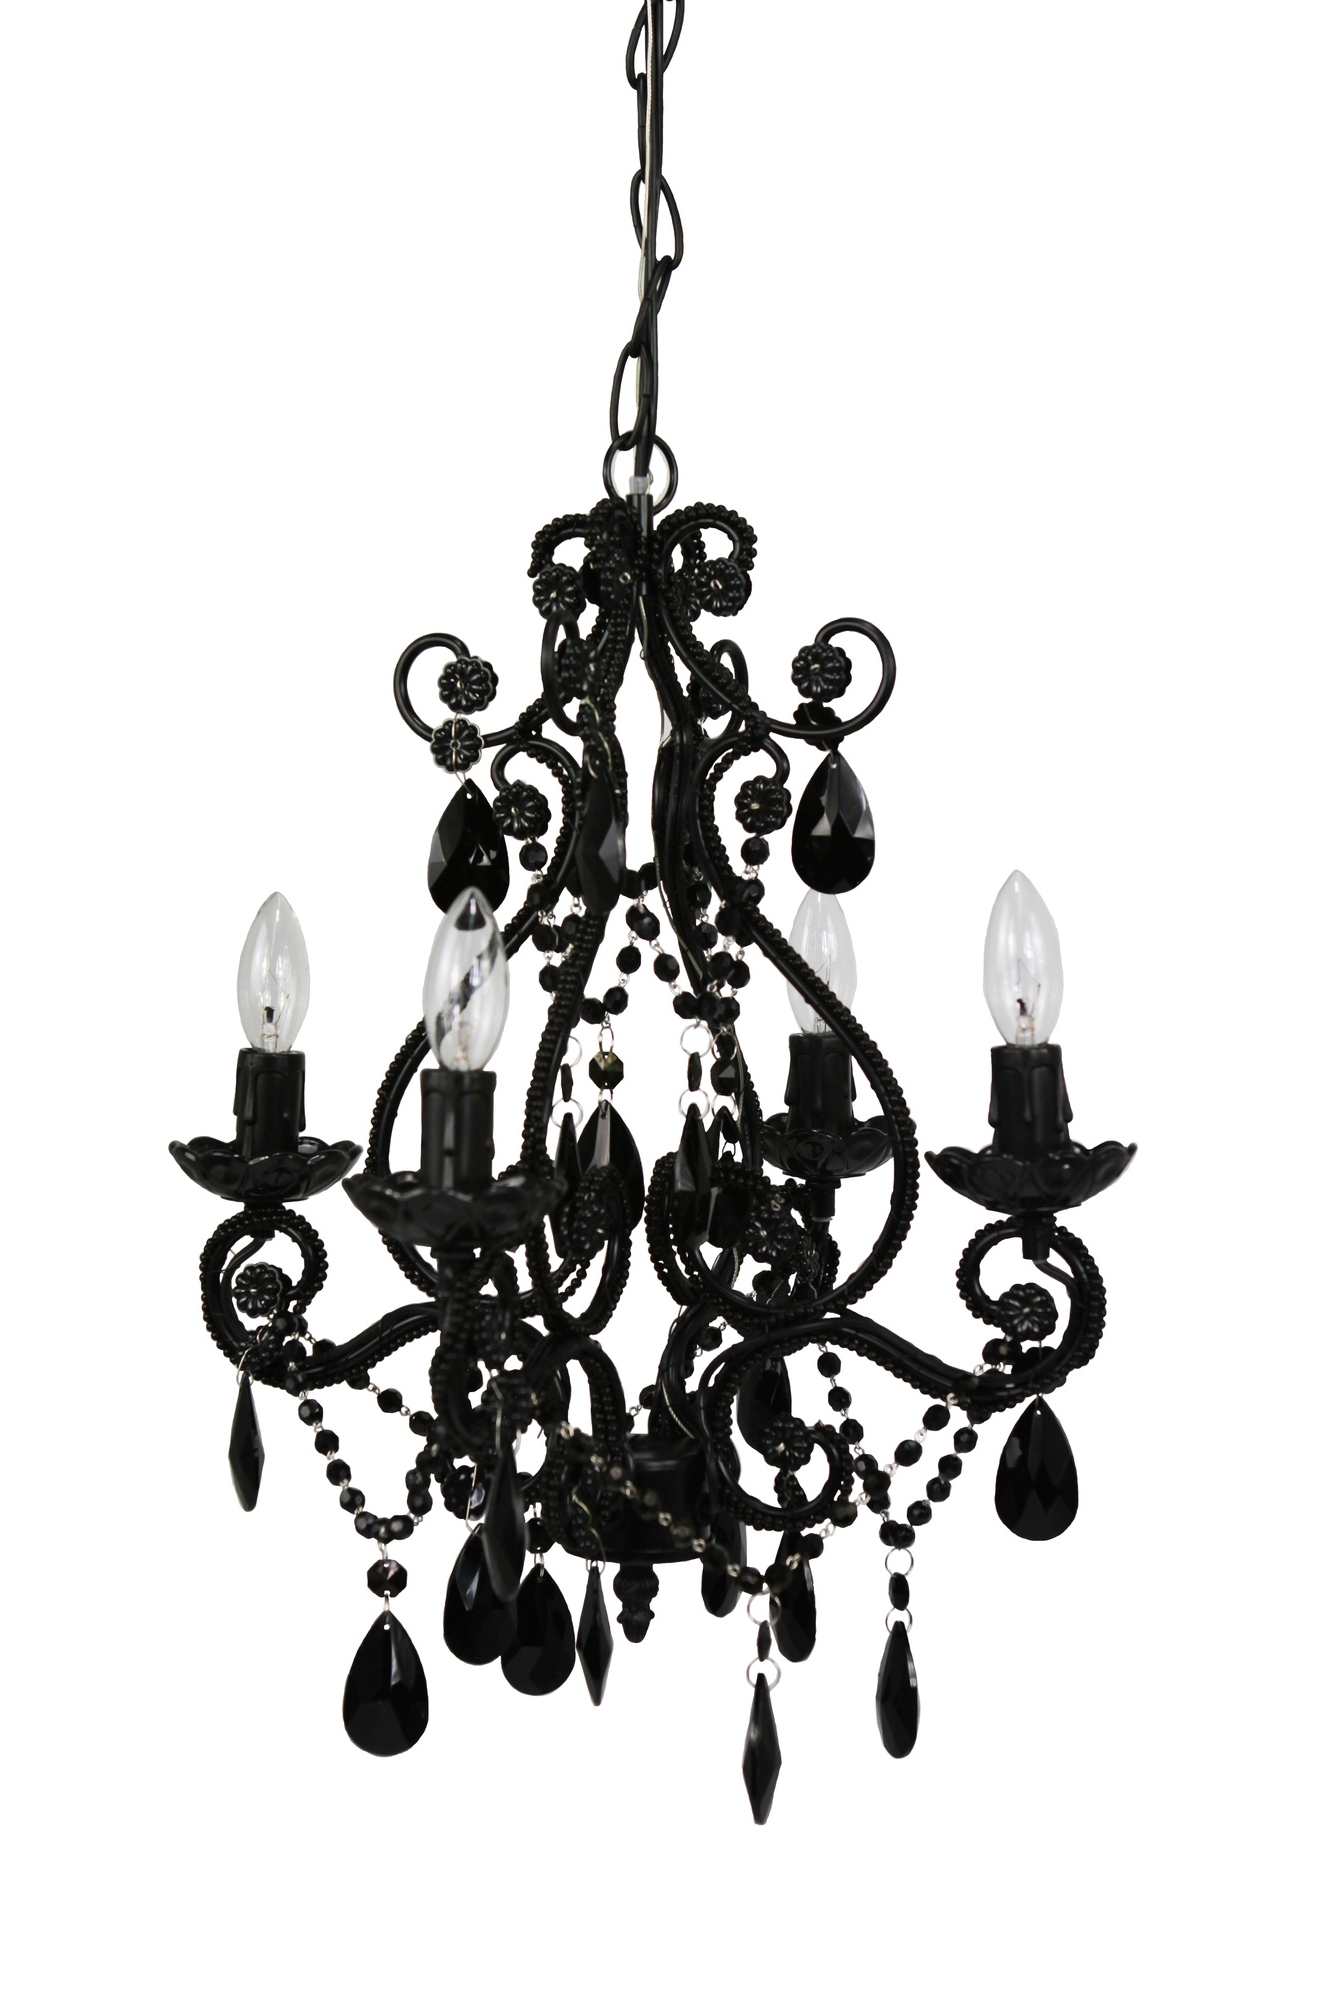 Cheap Chandelier, Chandeliers And Modern Throughout Antique Black Chandelier (View 8 of 20)